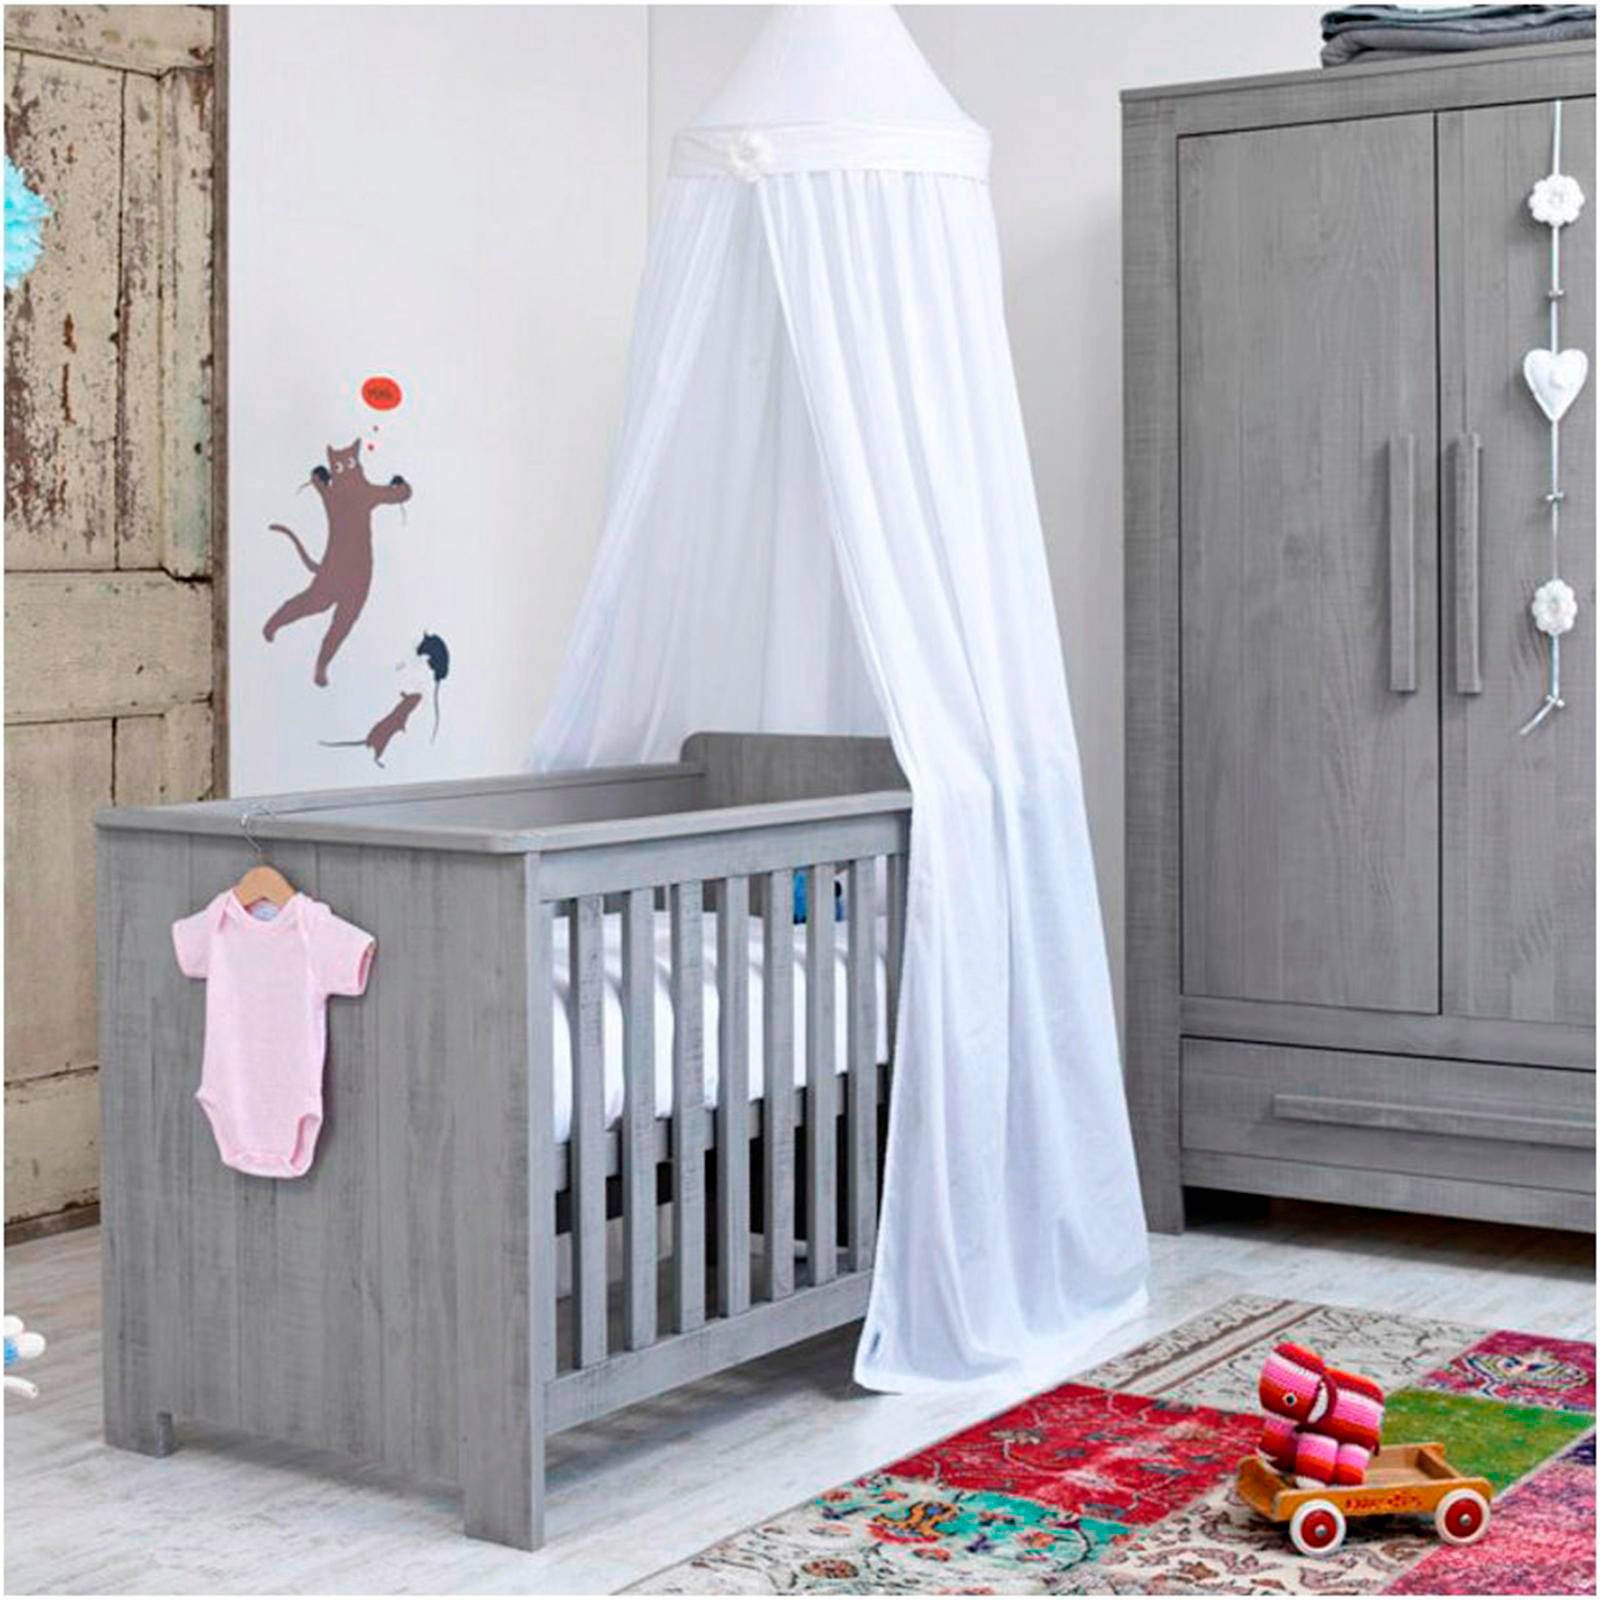 Coming Kids Zanzi babykamer (ledikant + commode)